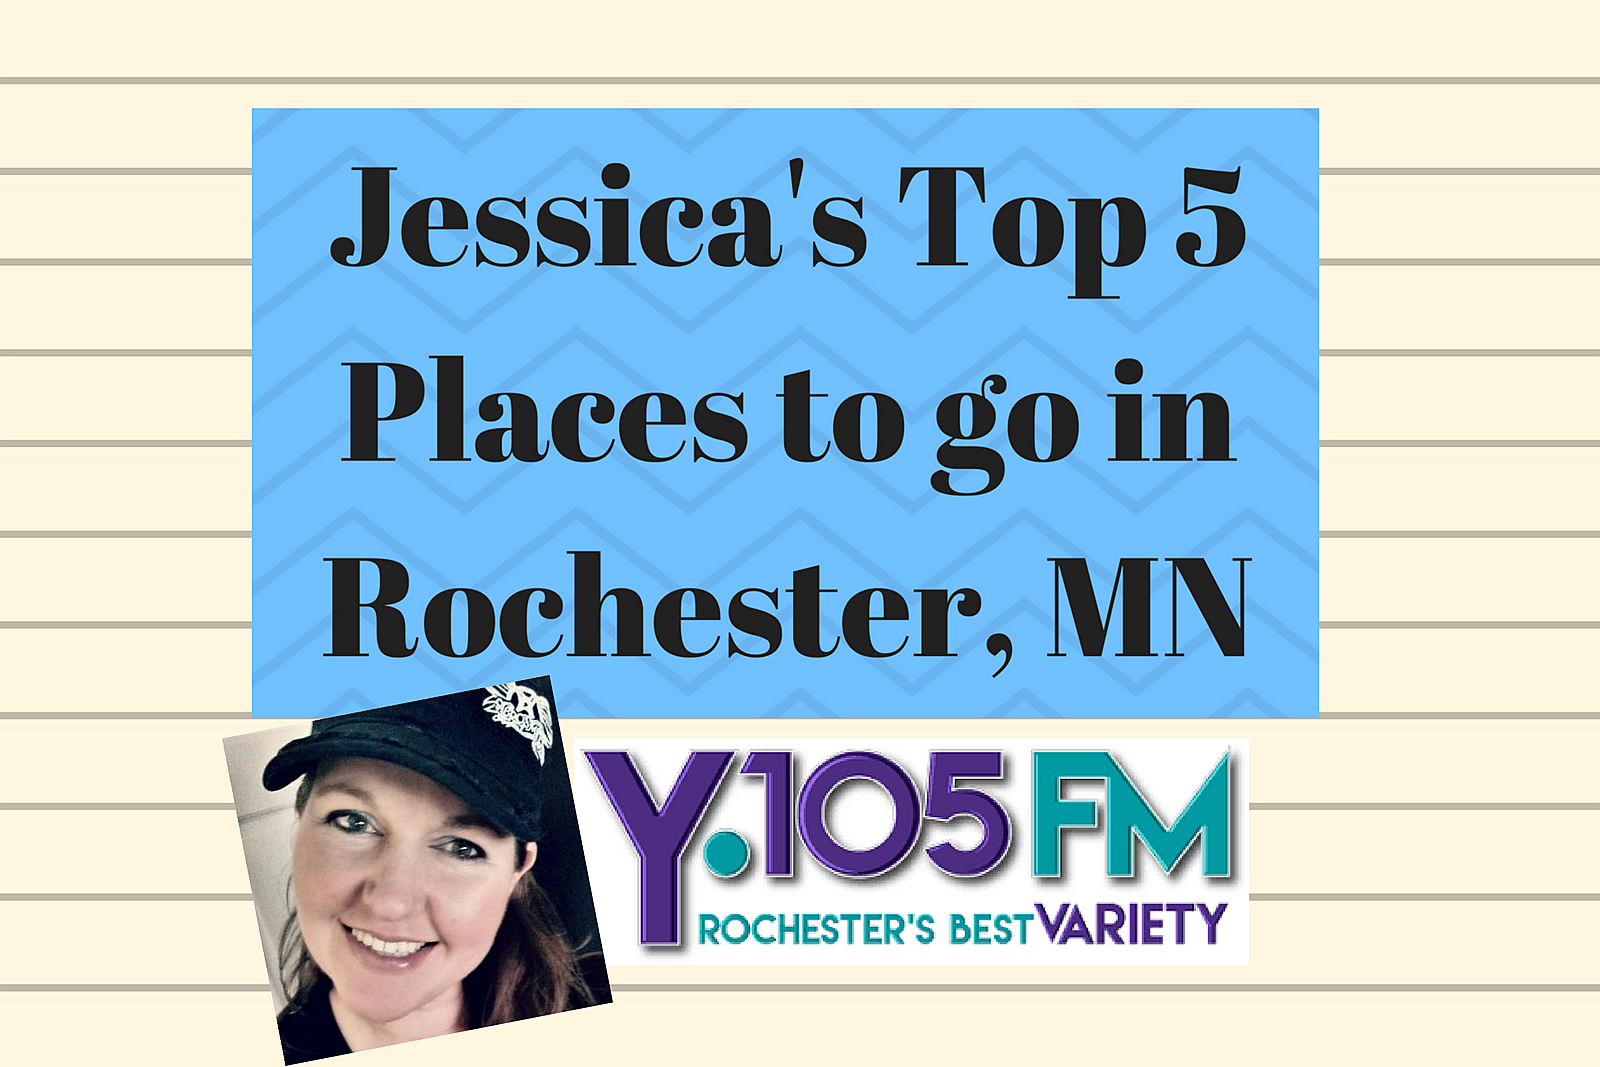 Jessica's Top 5 Places to go in Rochester, MN